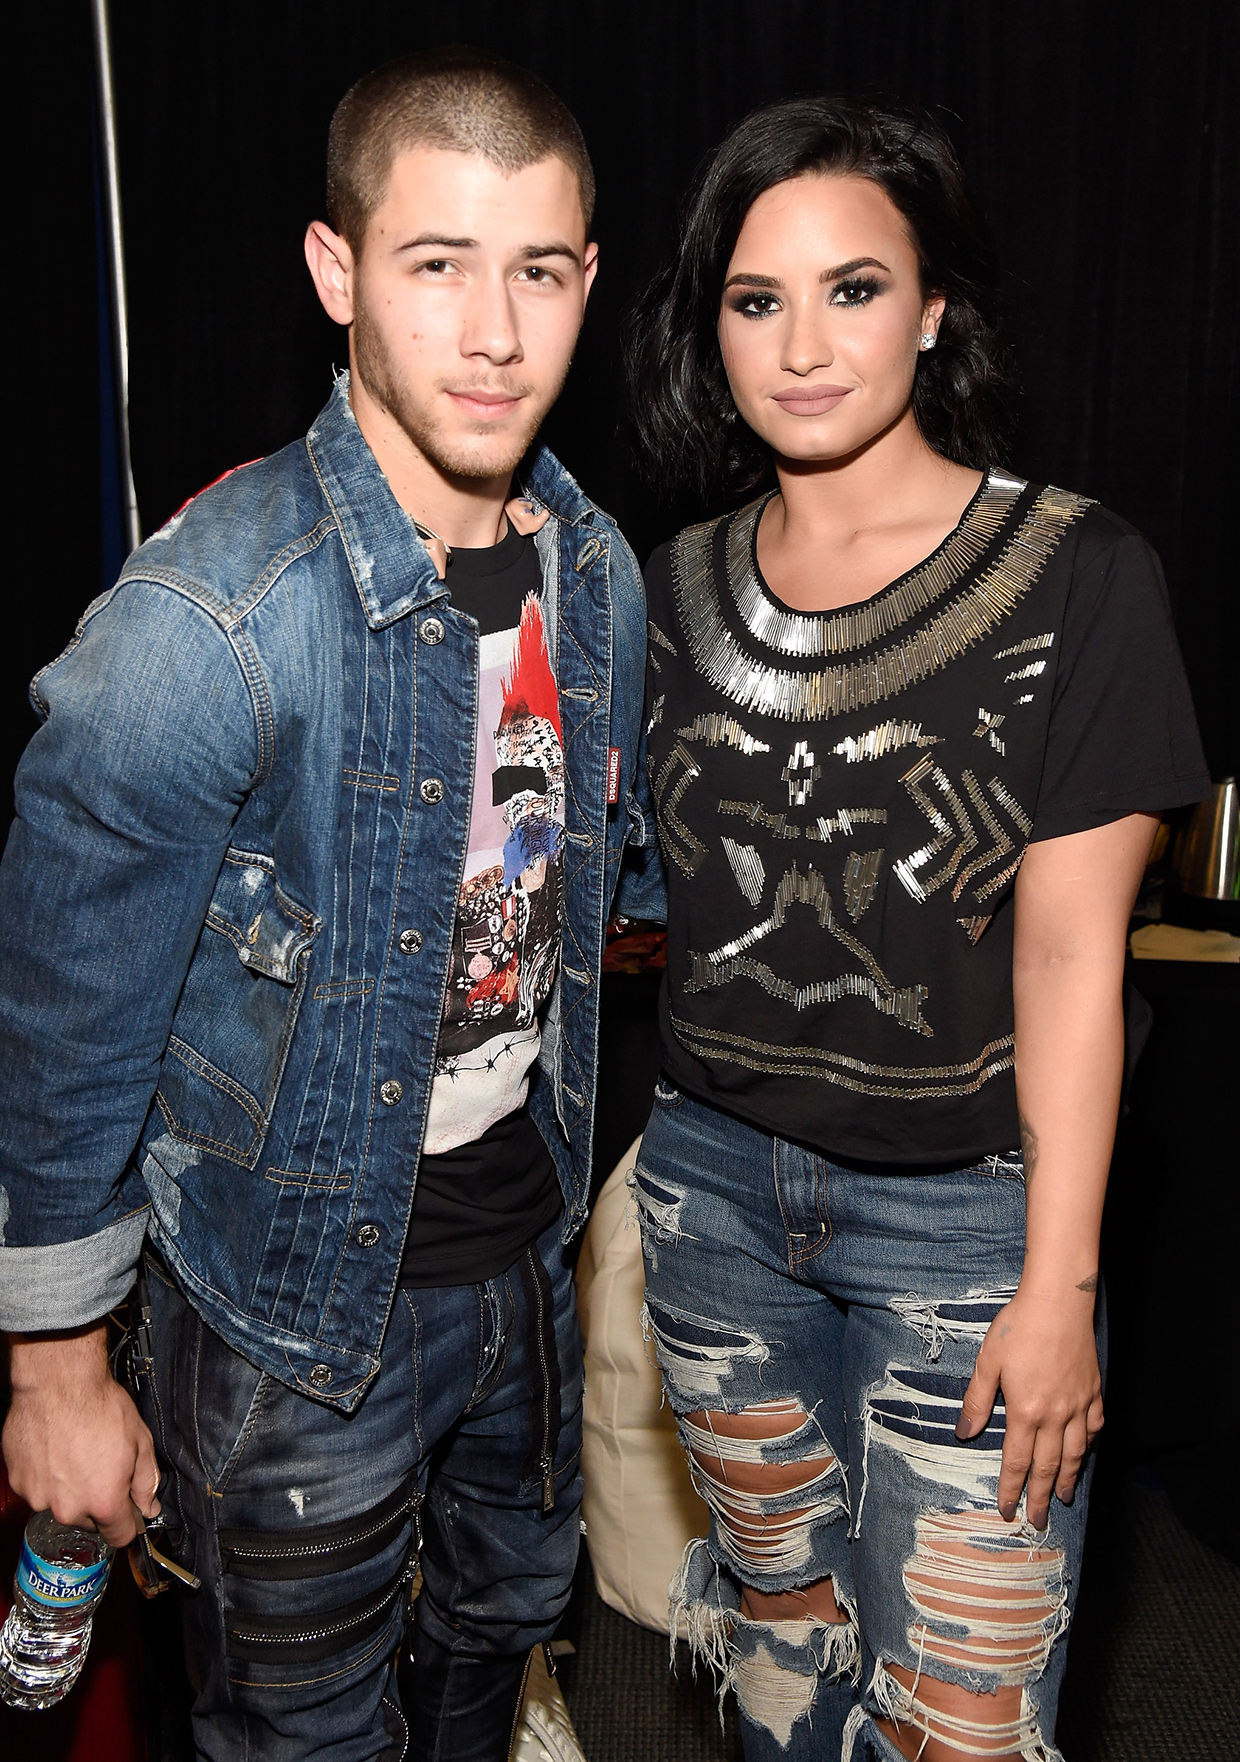 Nick Jonas and Demi Lovato Kick Off Their <em>Future Now</em> Tour—Go Behind the Scenes